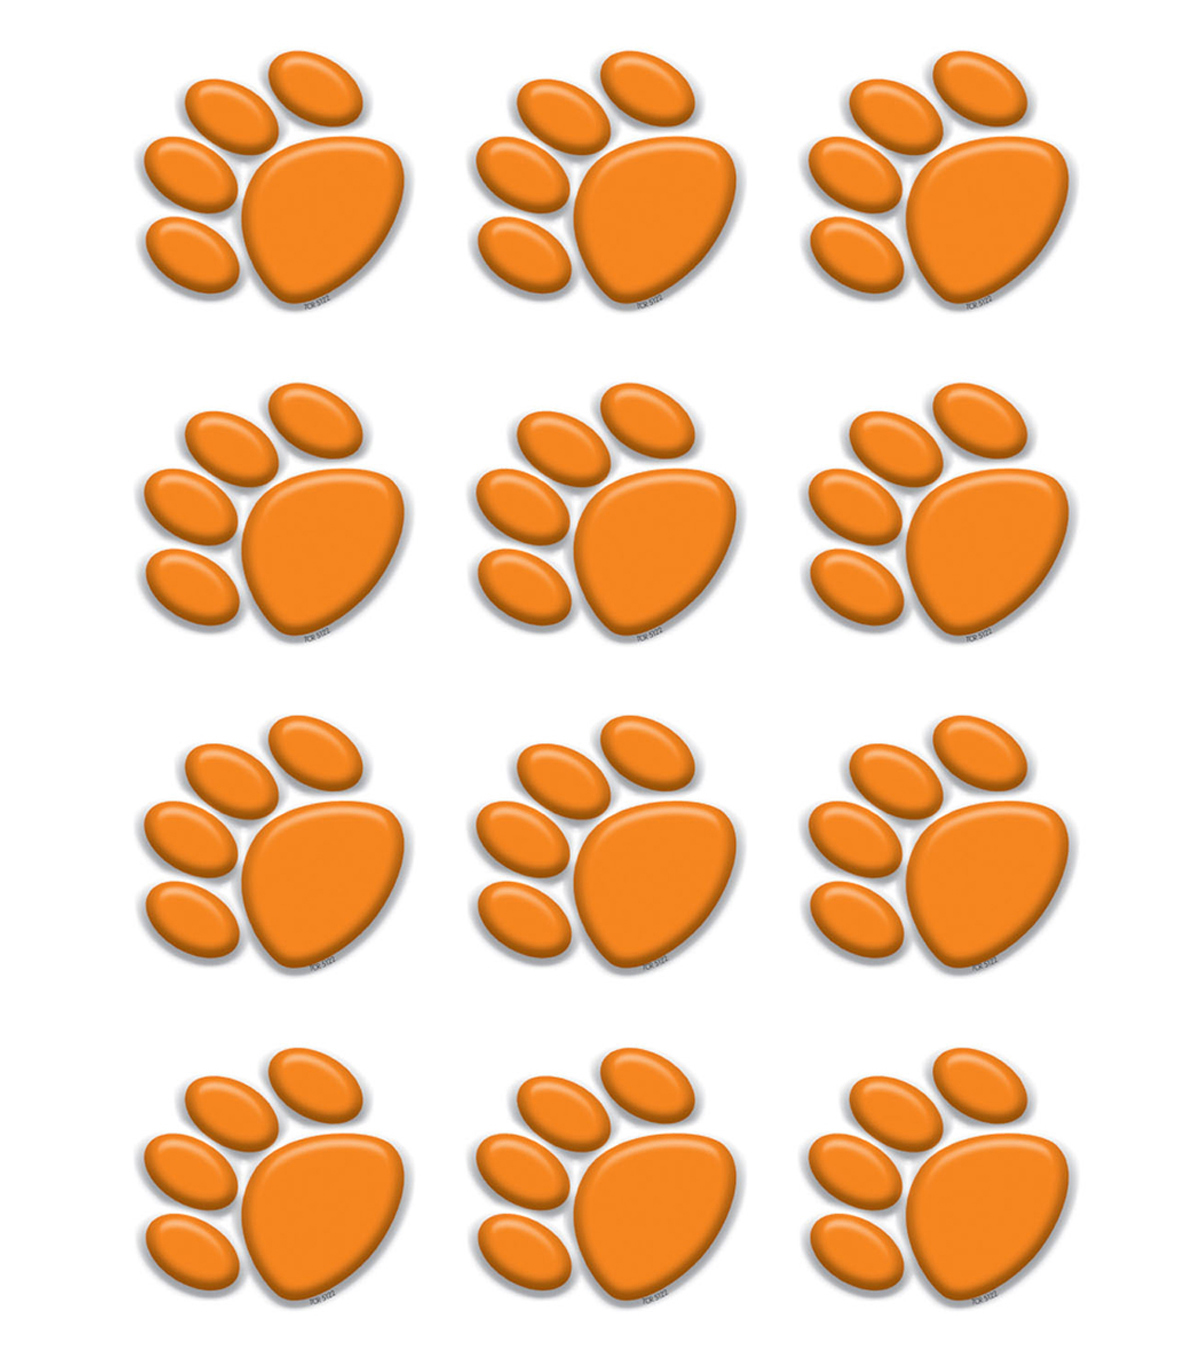 Orange Paw Prints Mini Accents 36/pk, Set of 12 Packs